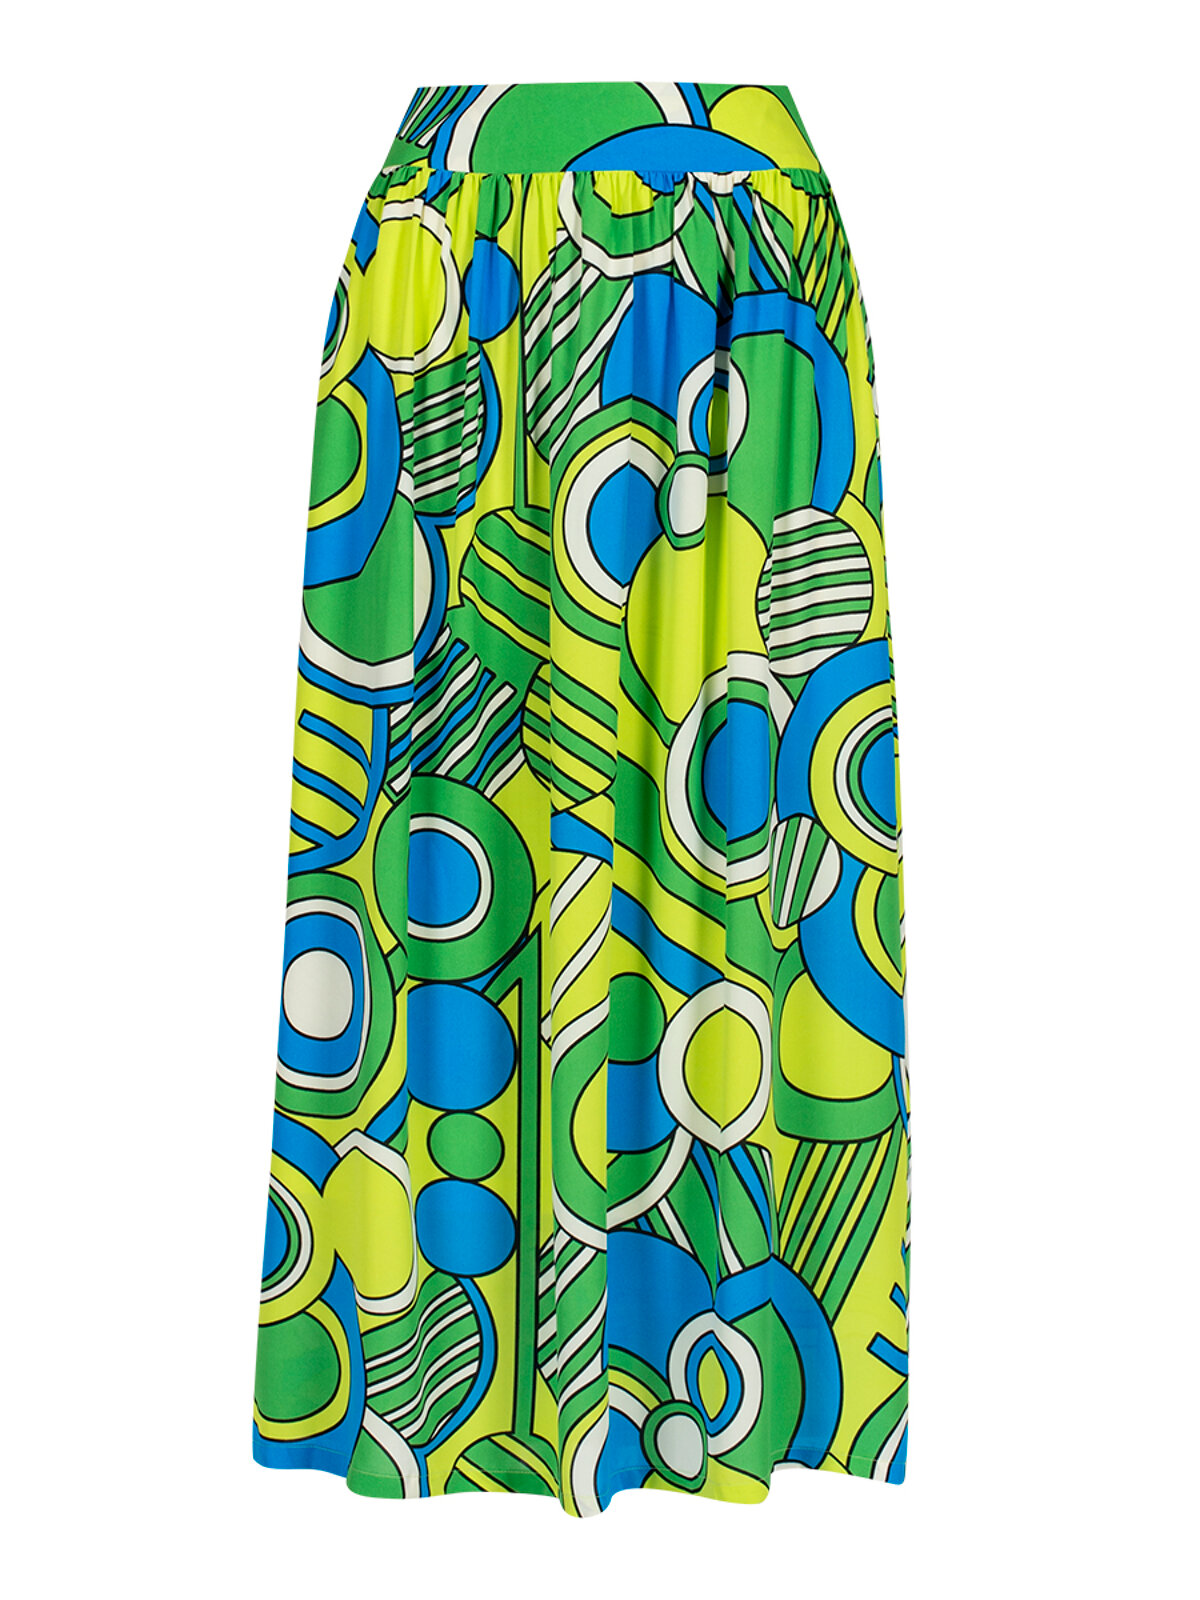 Sibilla Pop Paisley Skirt - Anonyme Designers